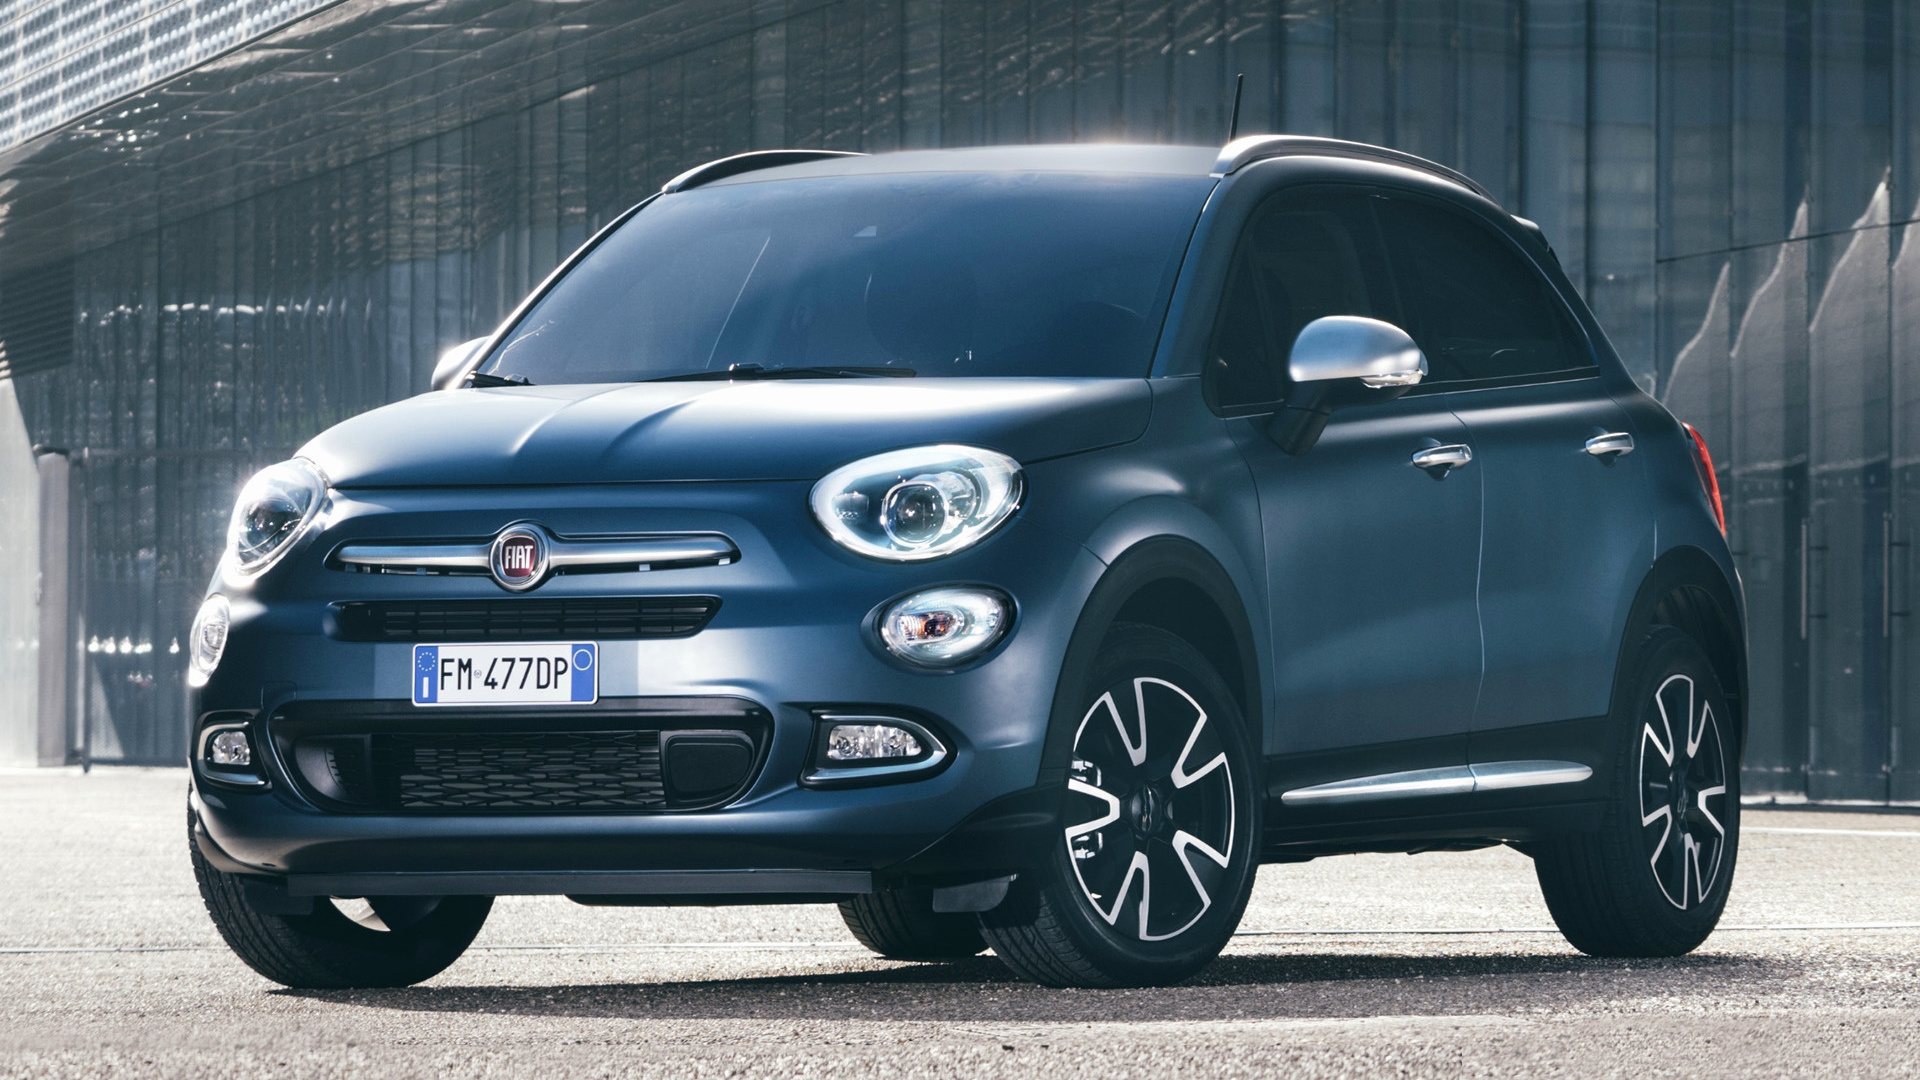 fiat 500x mirror 2018 wallpapers and hd images car pixel. Black Bedroom Furniture Sets. Home Design Ideas